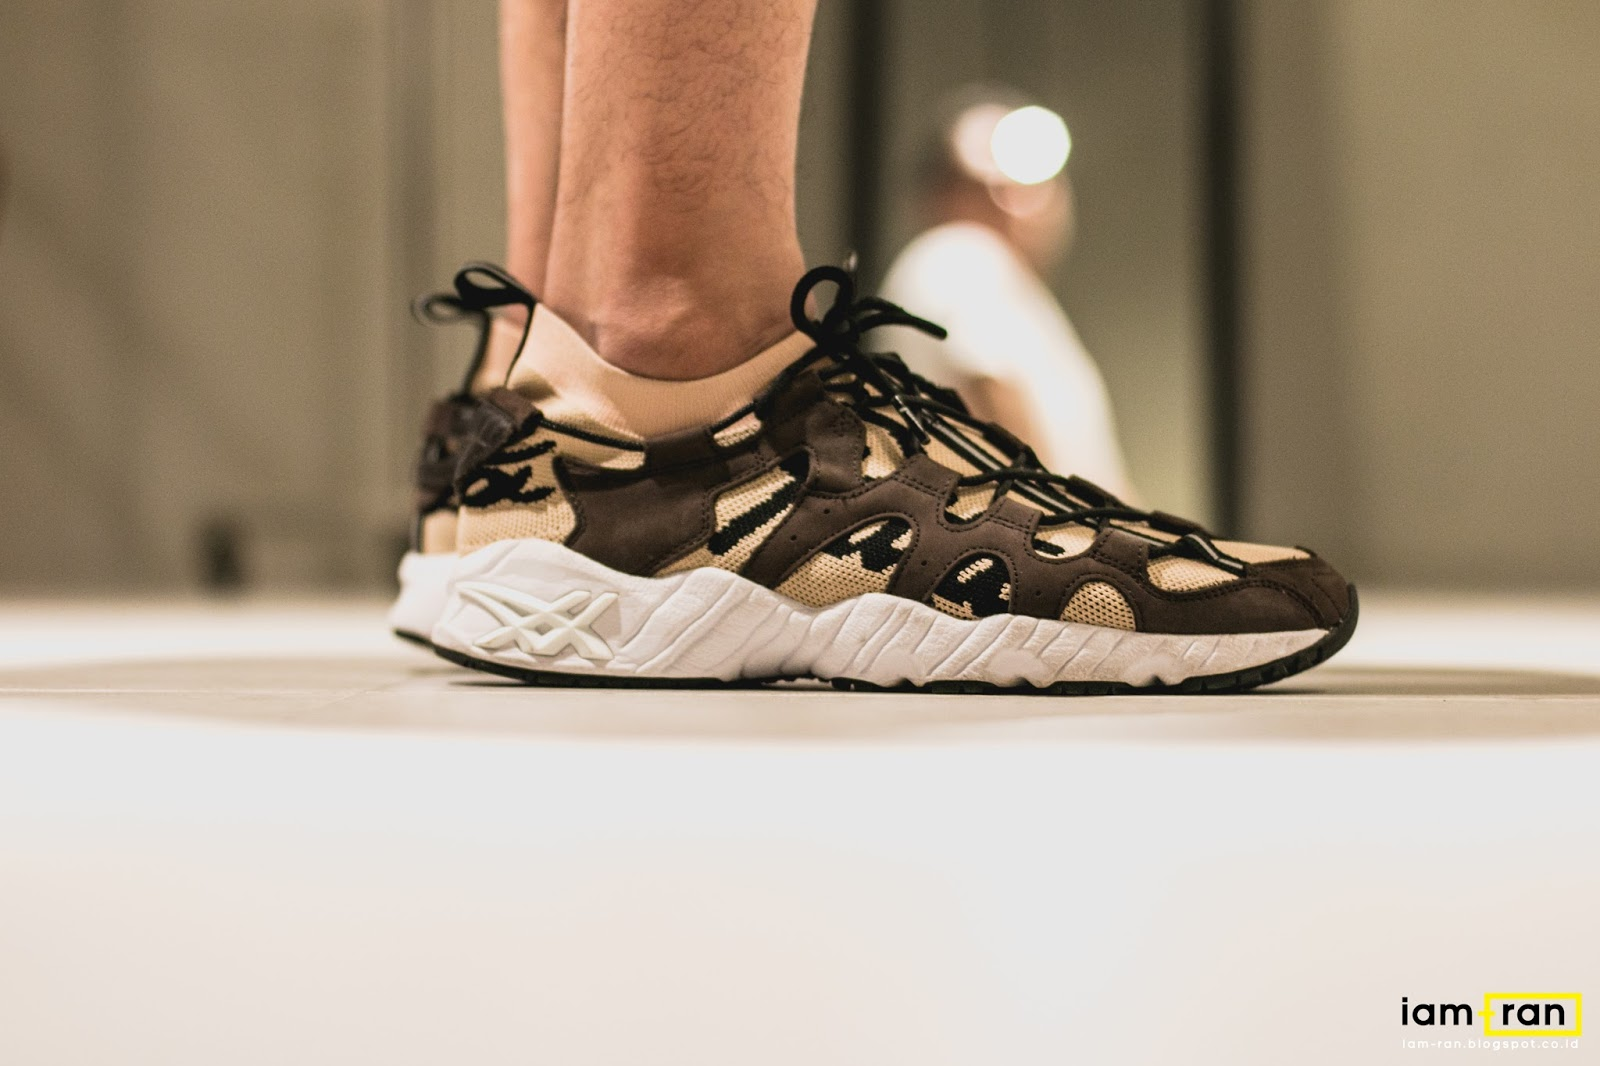 934d7fb4f IAM-RAN  ON FEET   Derry - Asics Gel Mai knit X Patta